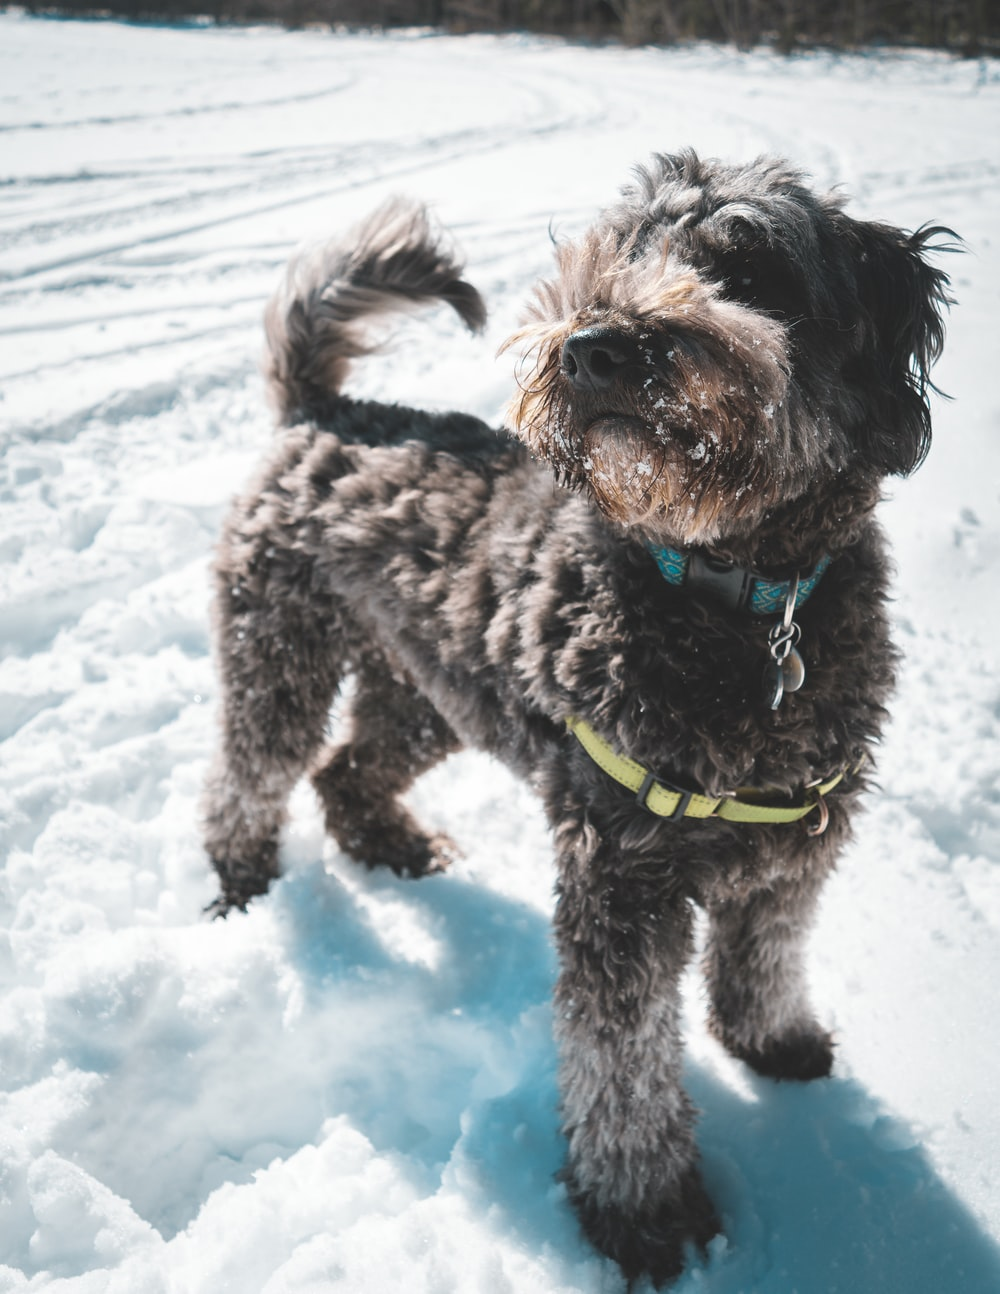 gray dog with collar standing on snow